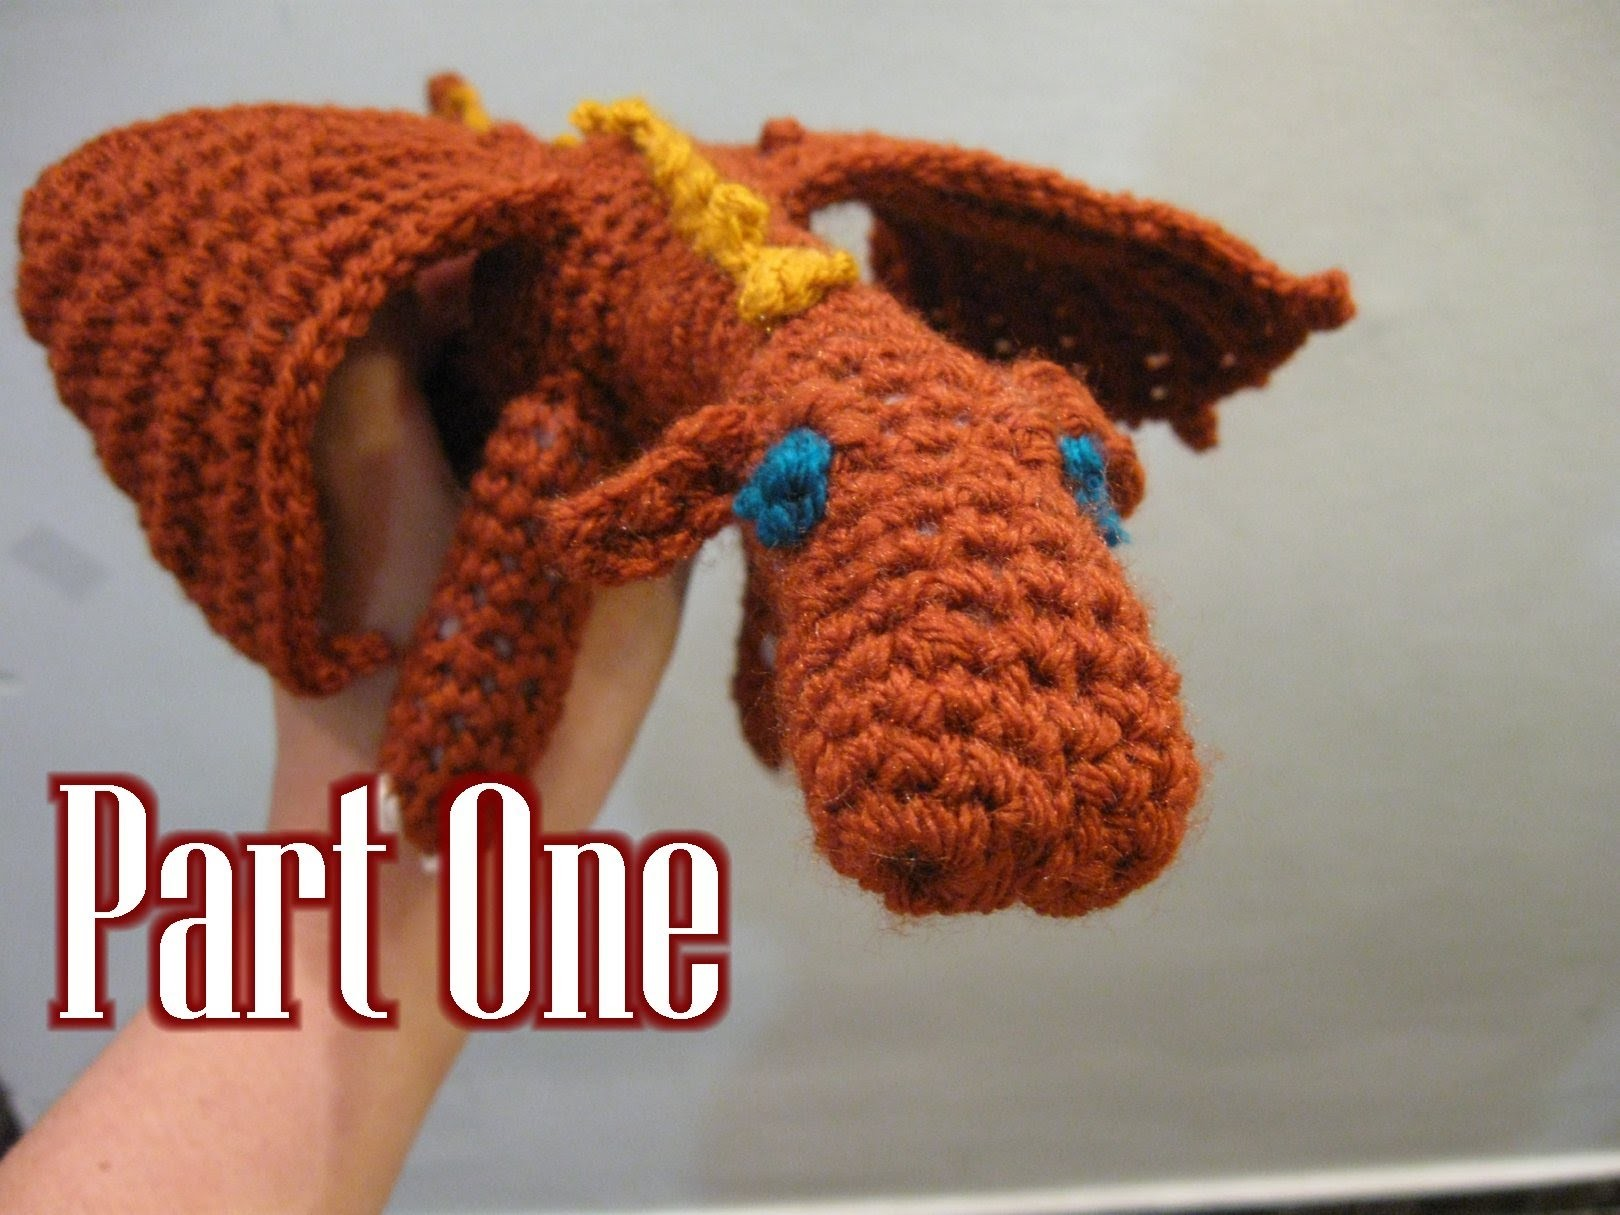 Crochet Amigurumi Fierce Dragon Tutorial pt 1